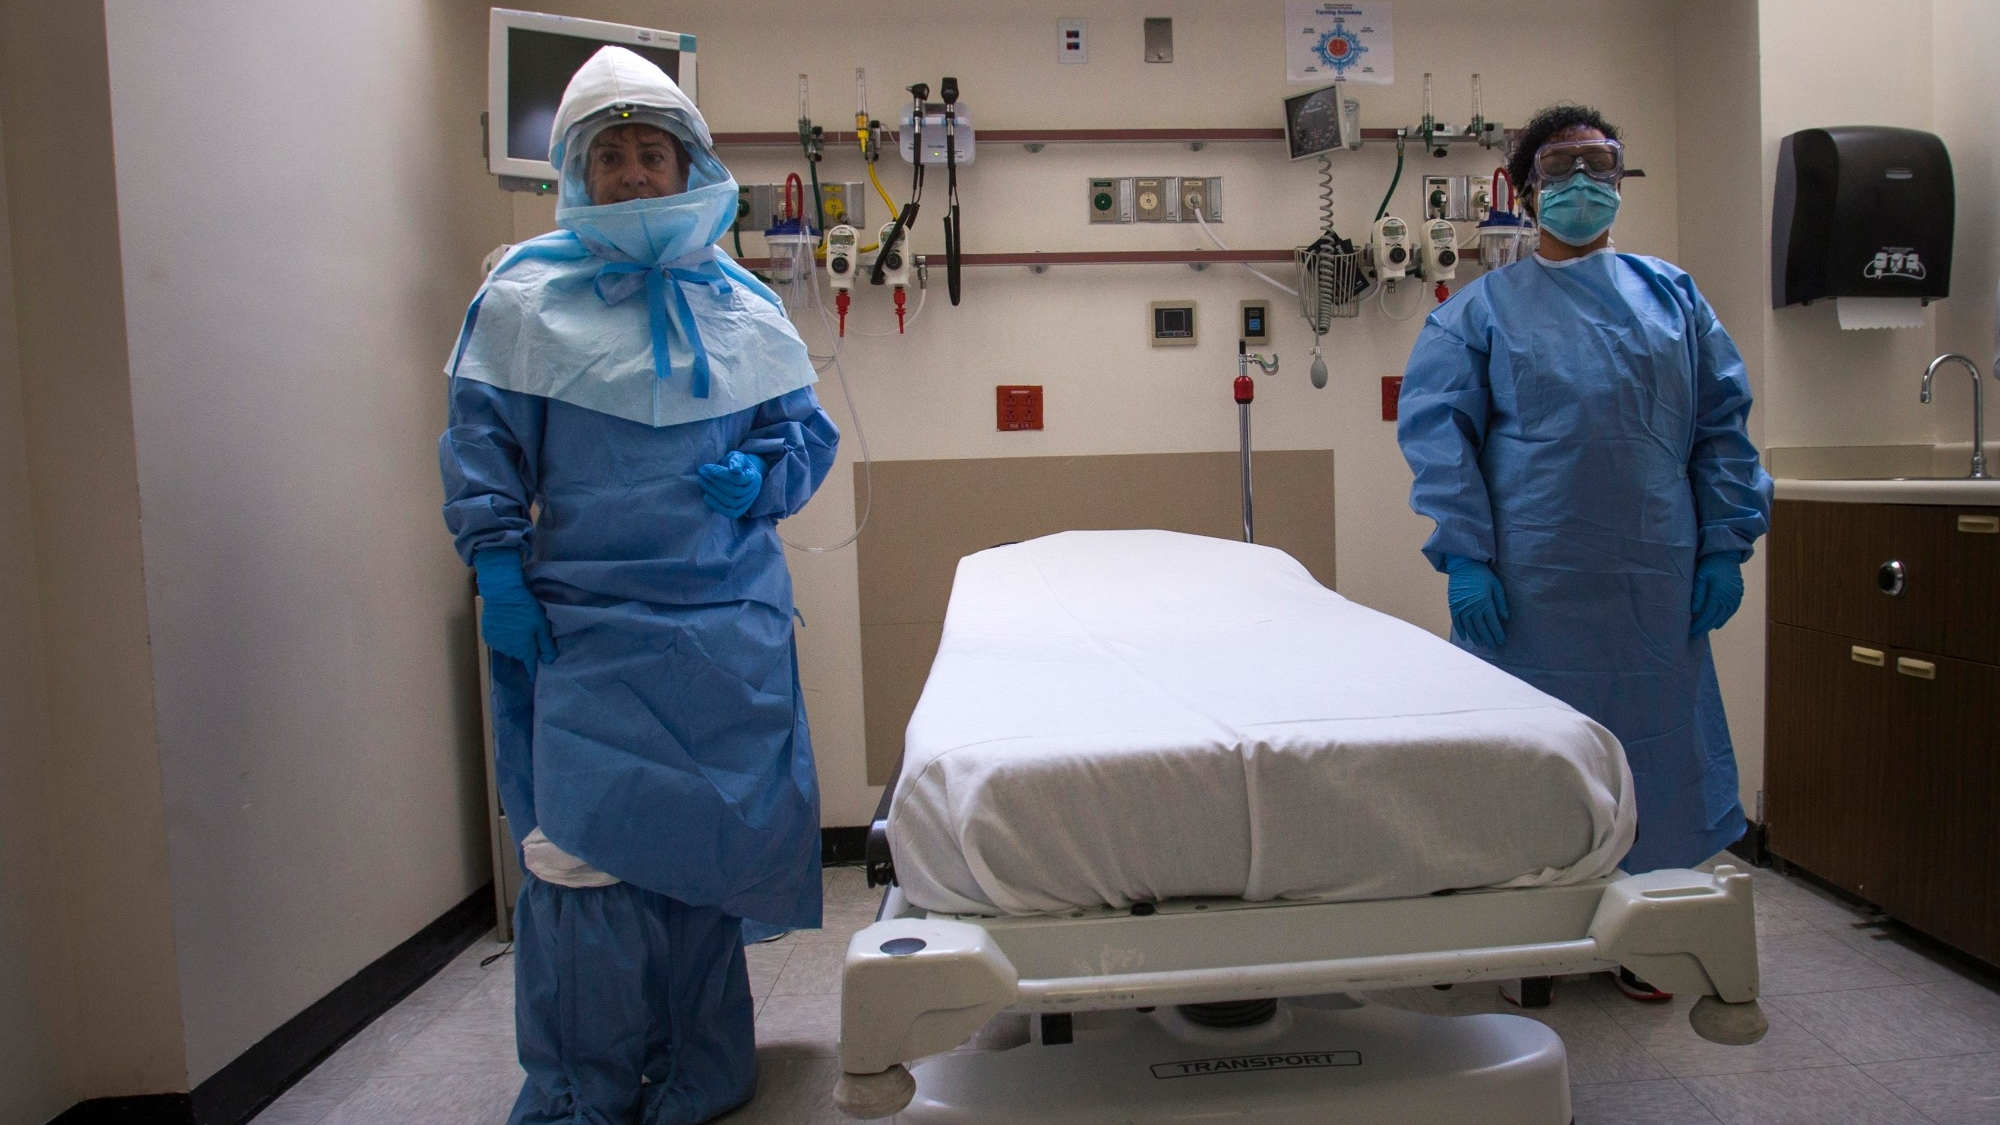 Hospital staff wear protective gear to protect them from an Ebola virus infection in the emergency department of Bellevue Hospital in Manhattan, New York, October 8, 2014, photo by Adrees Latif/Reuters